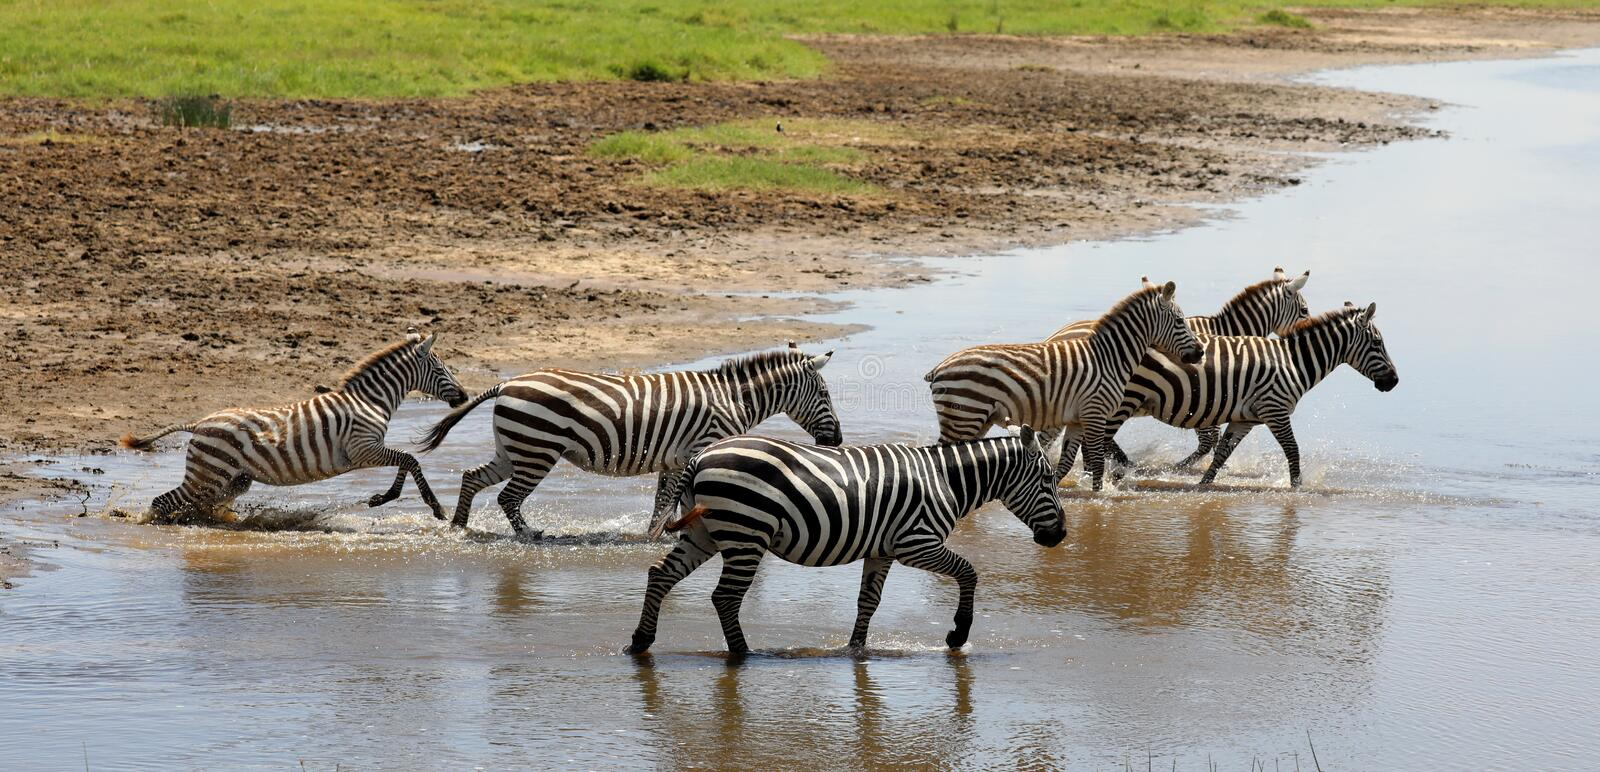 Zebra crossing a river n masai mara. Zebra in the masai mara game park stock image